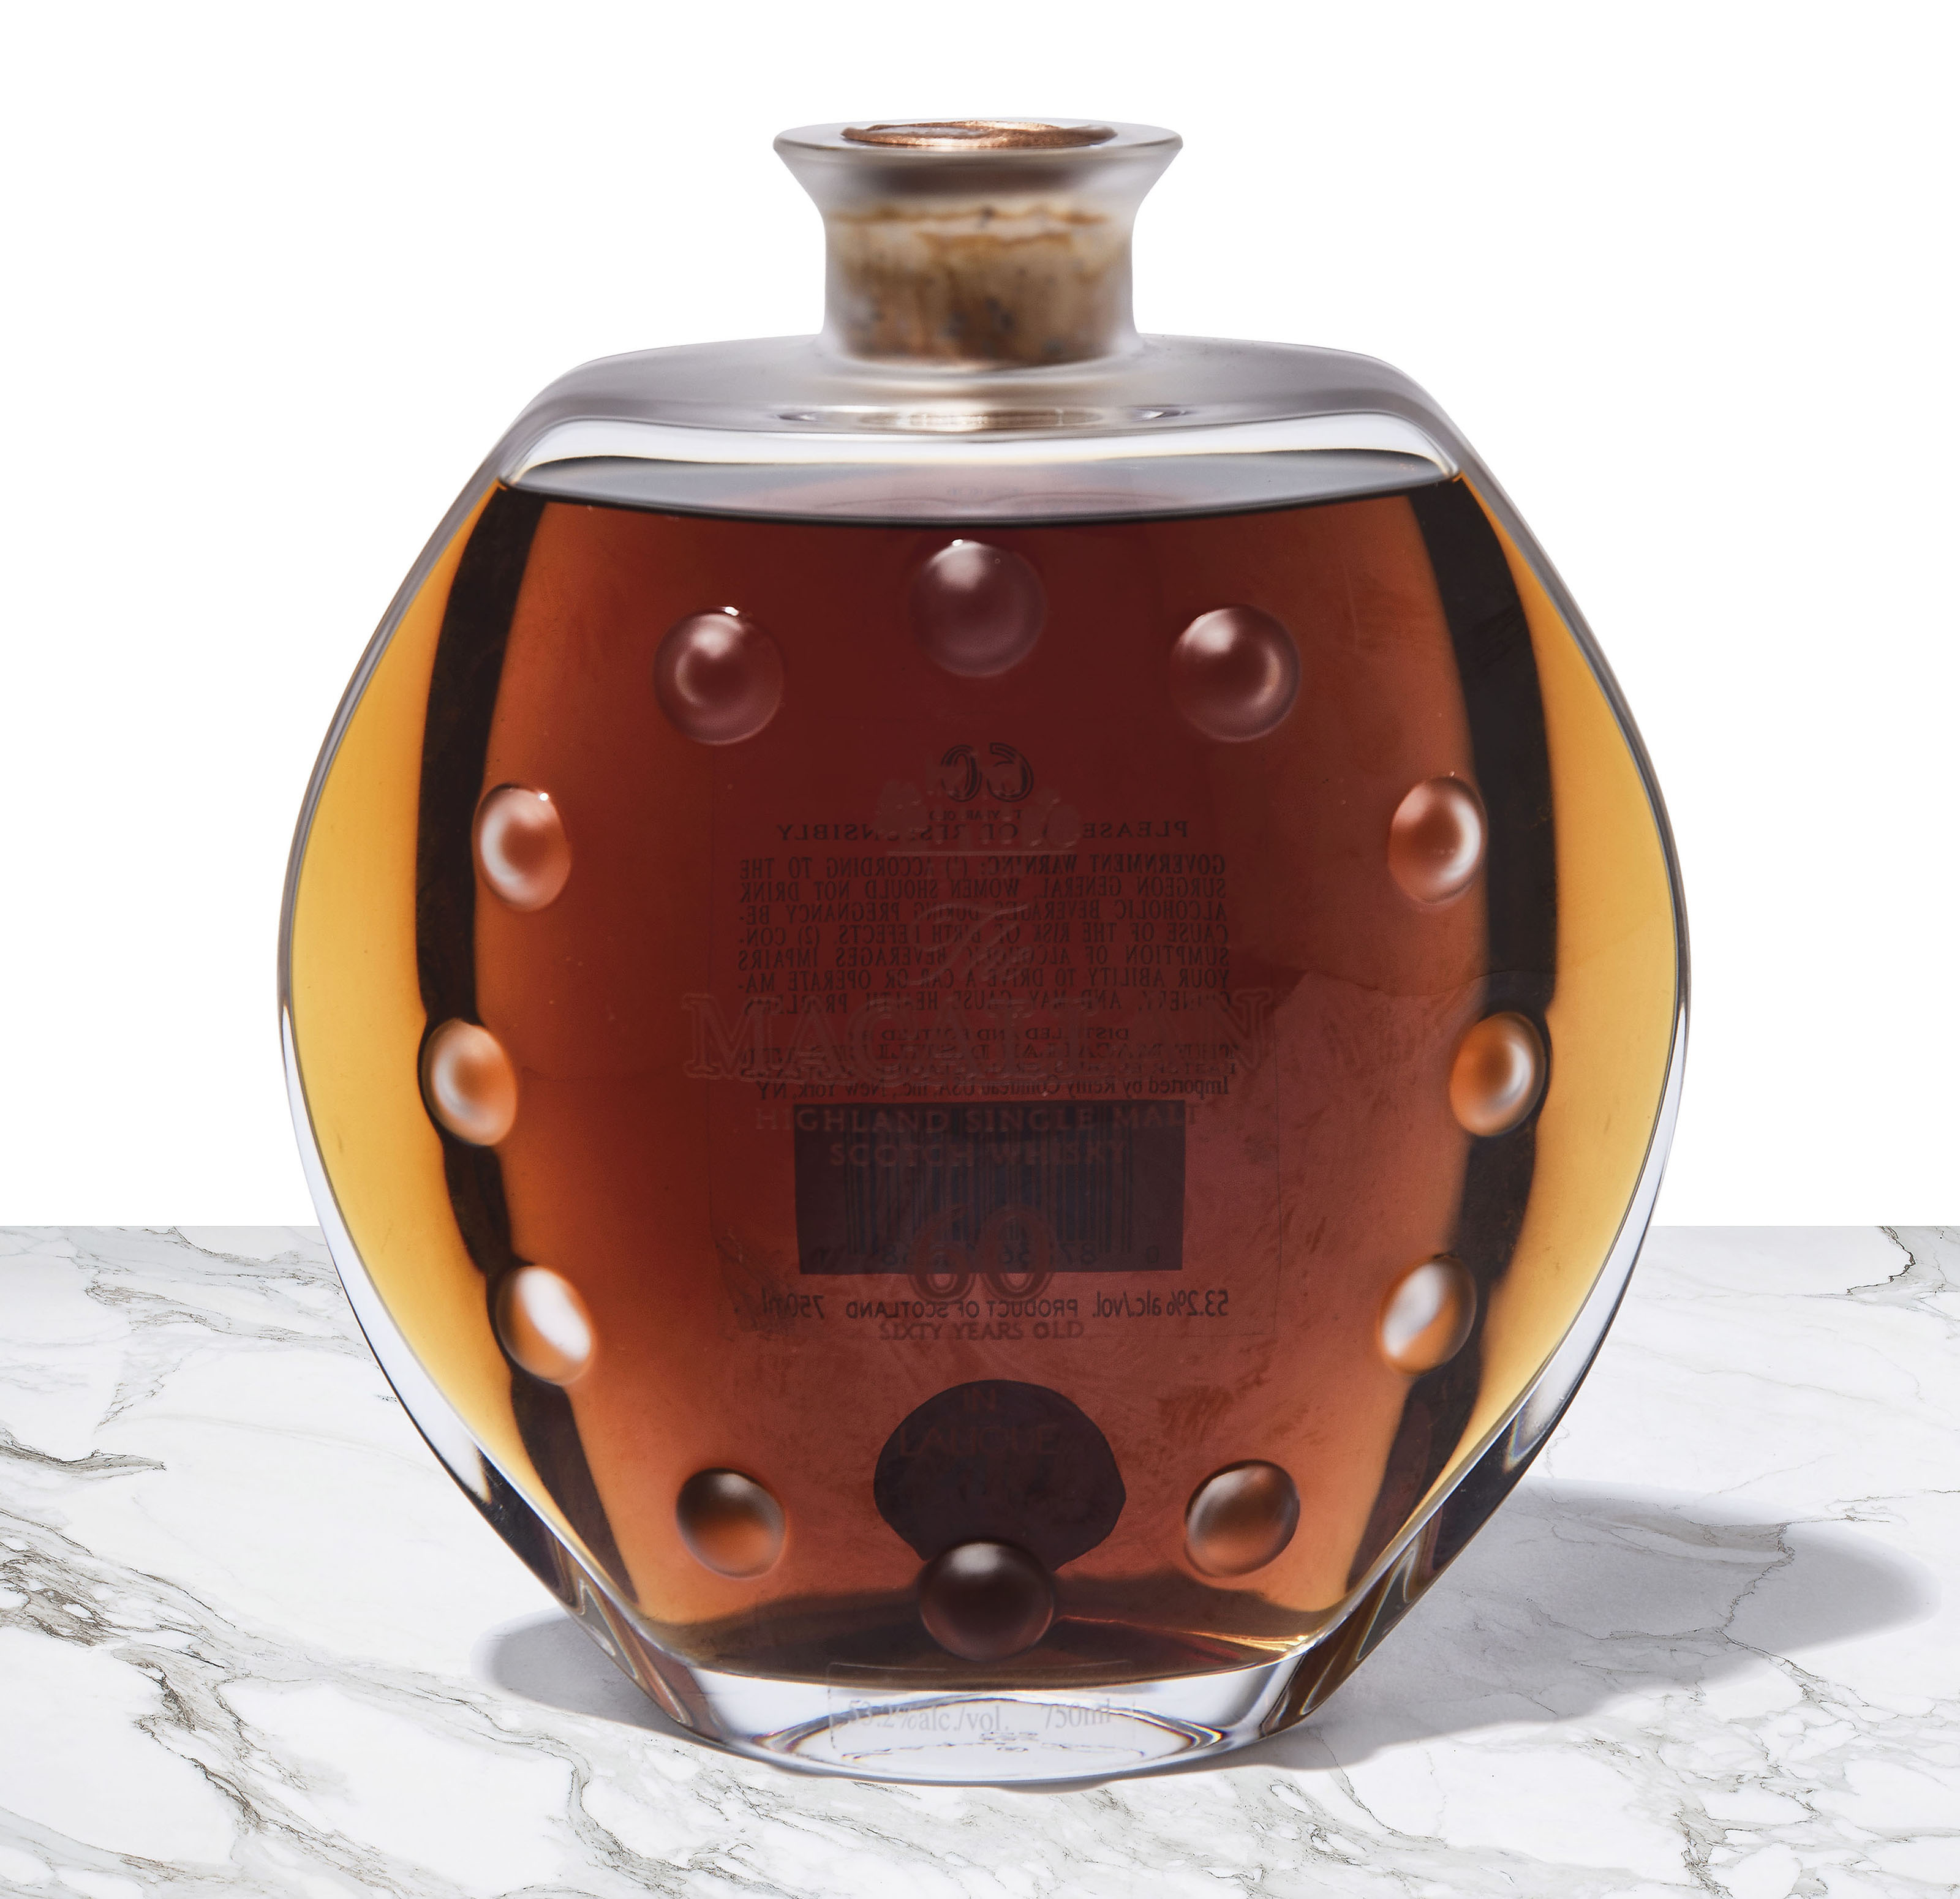 The Macallan 60 Year Old in Lalique